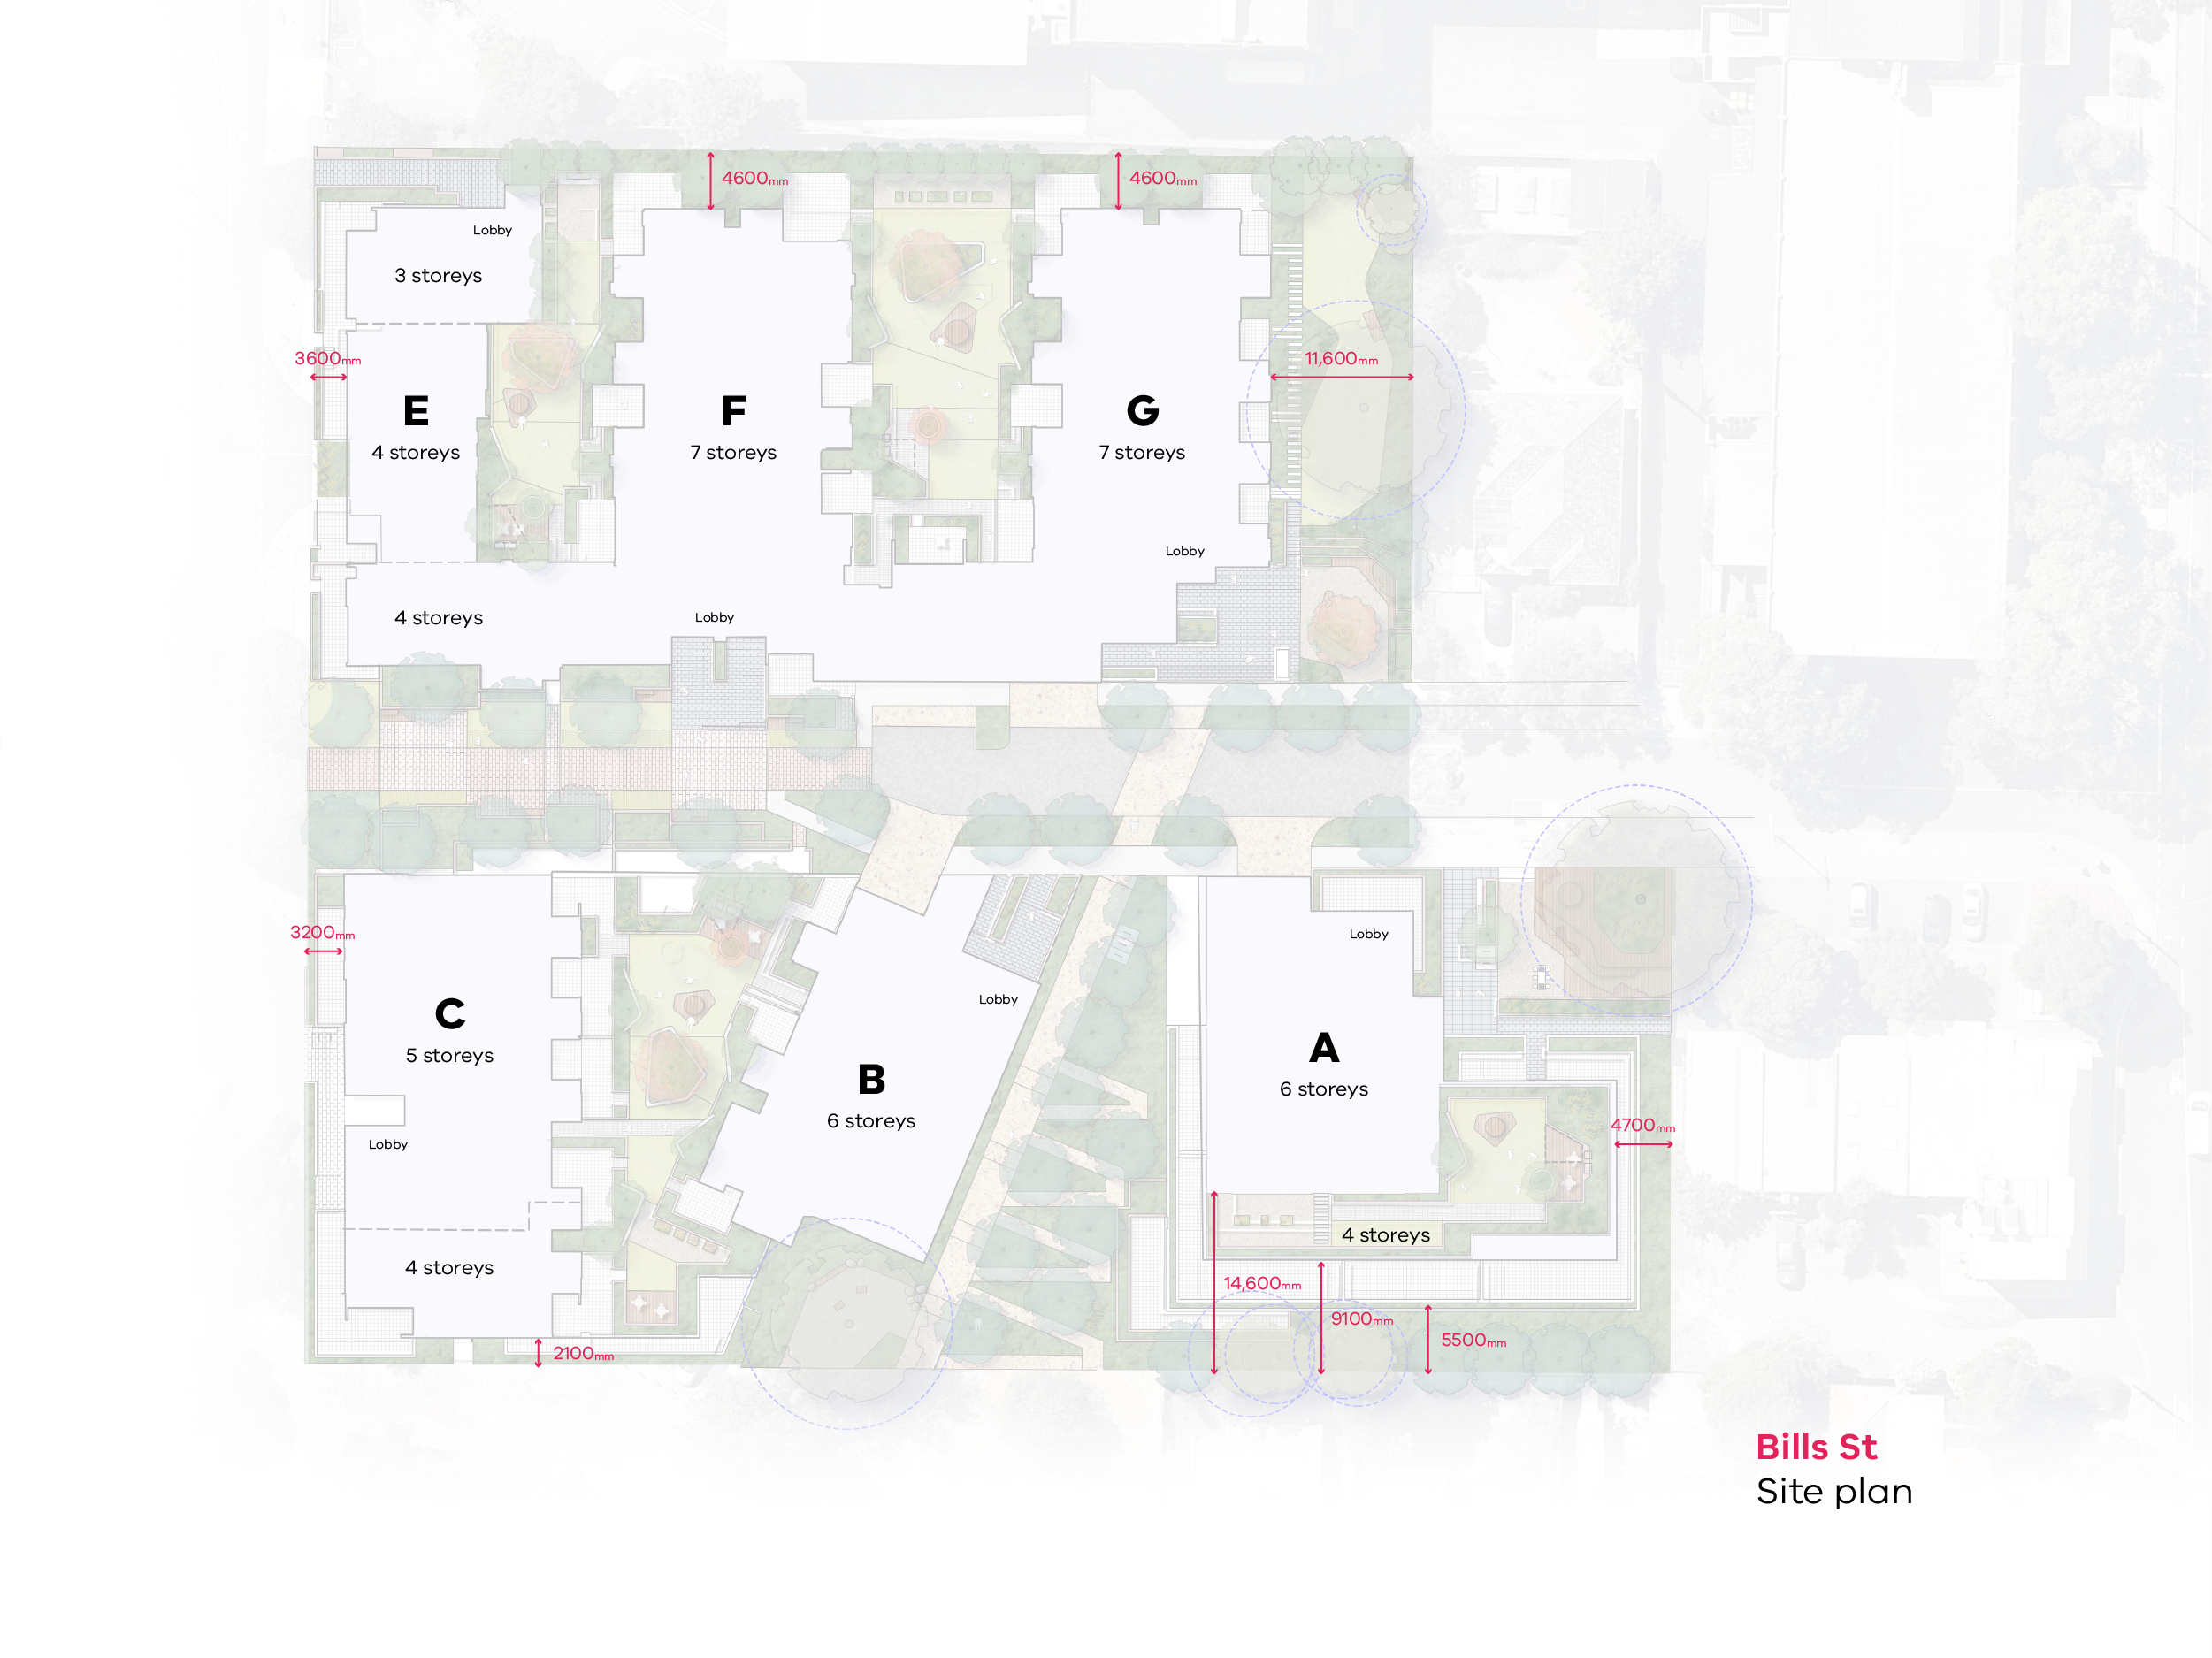 Map showing the building heights and setbacks of the Bills Street redevelopment. Building A (south east of Bills Street) - 6  and 4 storeys high, building B (south of Bills Street) - 6 storeys high, building C (south west of Bills Street) - 5 and 4 storeys high, building E (north west of Bills Street) - 3 and 4 storeys high, building F (north of Bills Street) - 4 and 7 storeys high and building G (north east of Bills Street) - 7 storeys high.